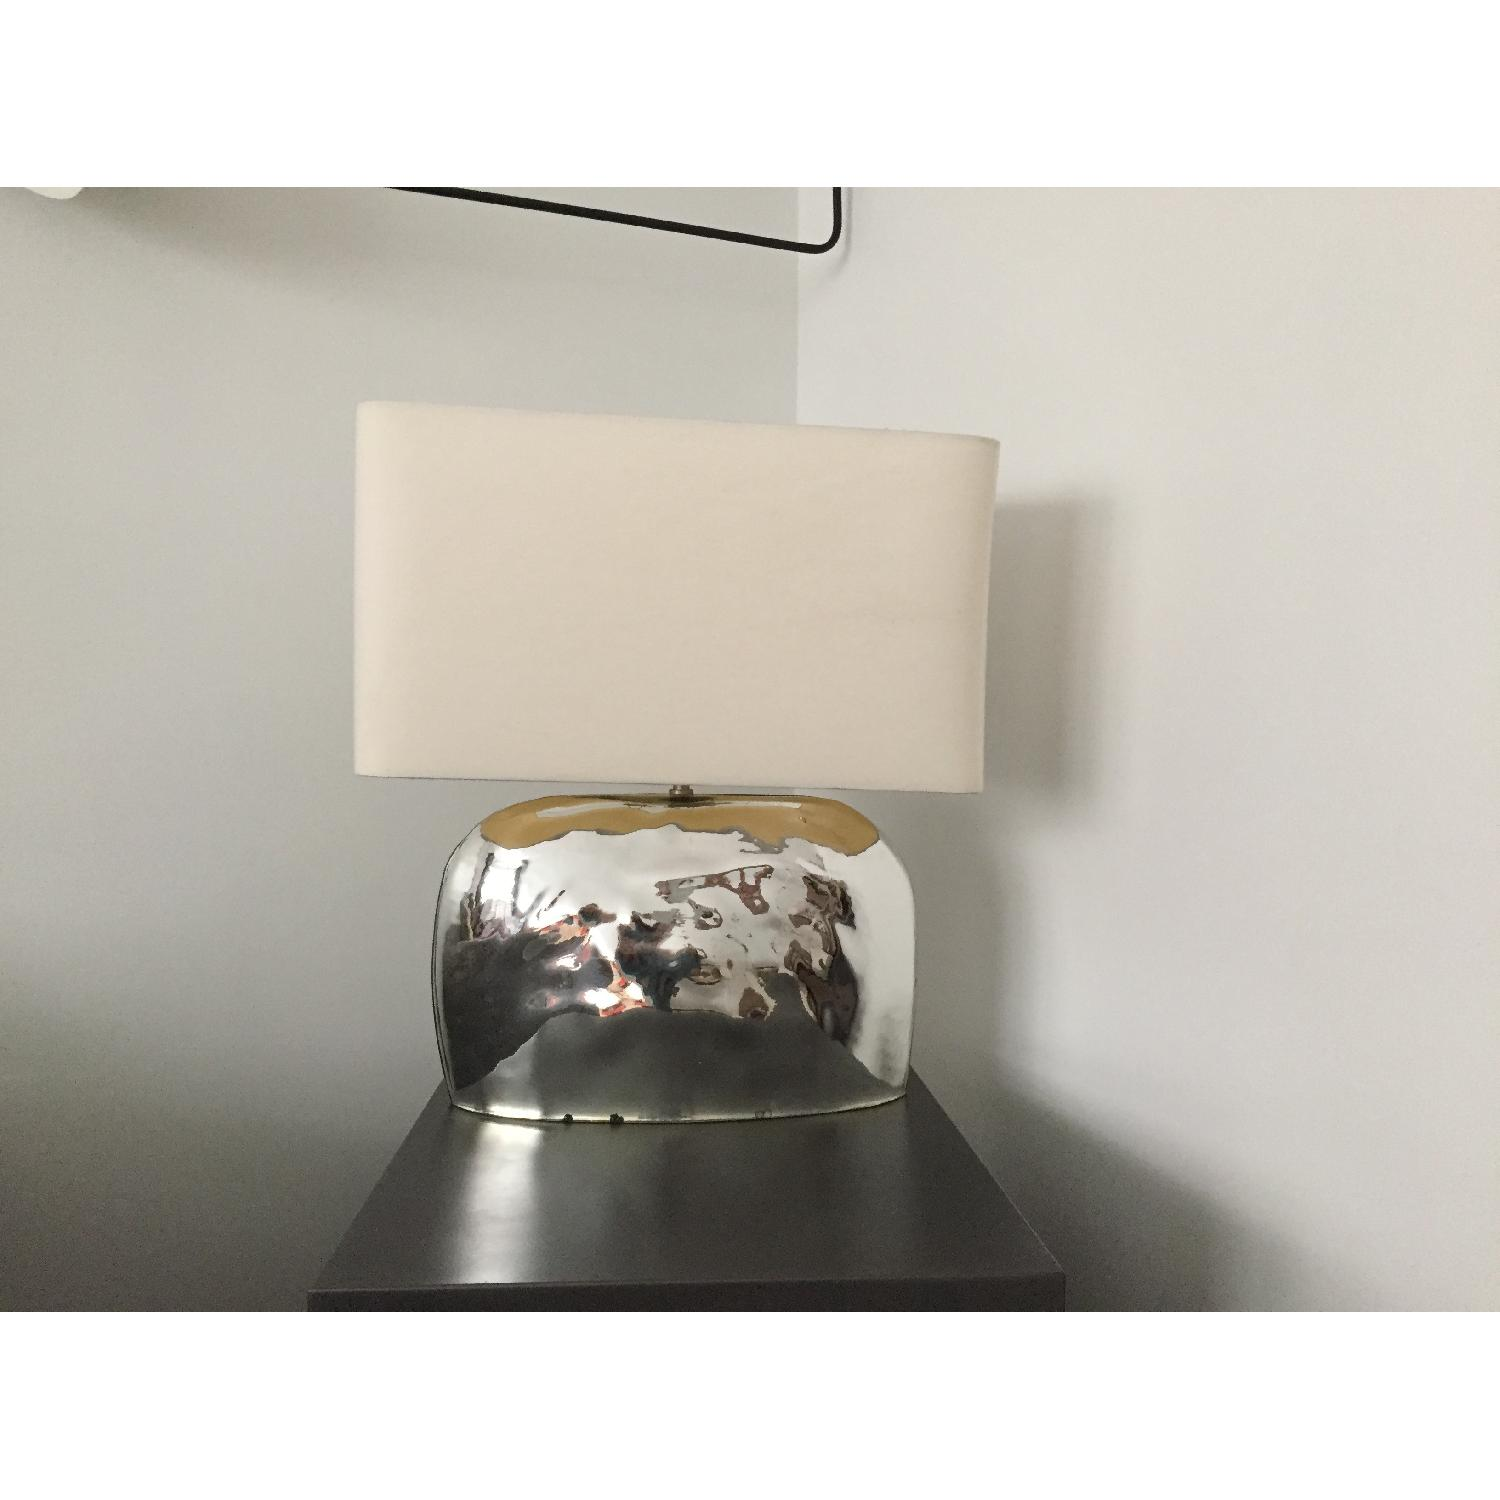 West elm pebble hammered mirror table lamp aptdeco west elm pebble hammered mirror table lamp aloadofball Image collections